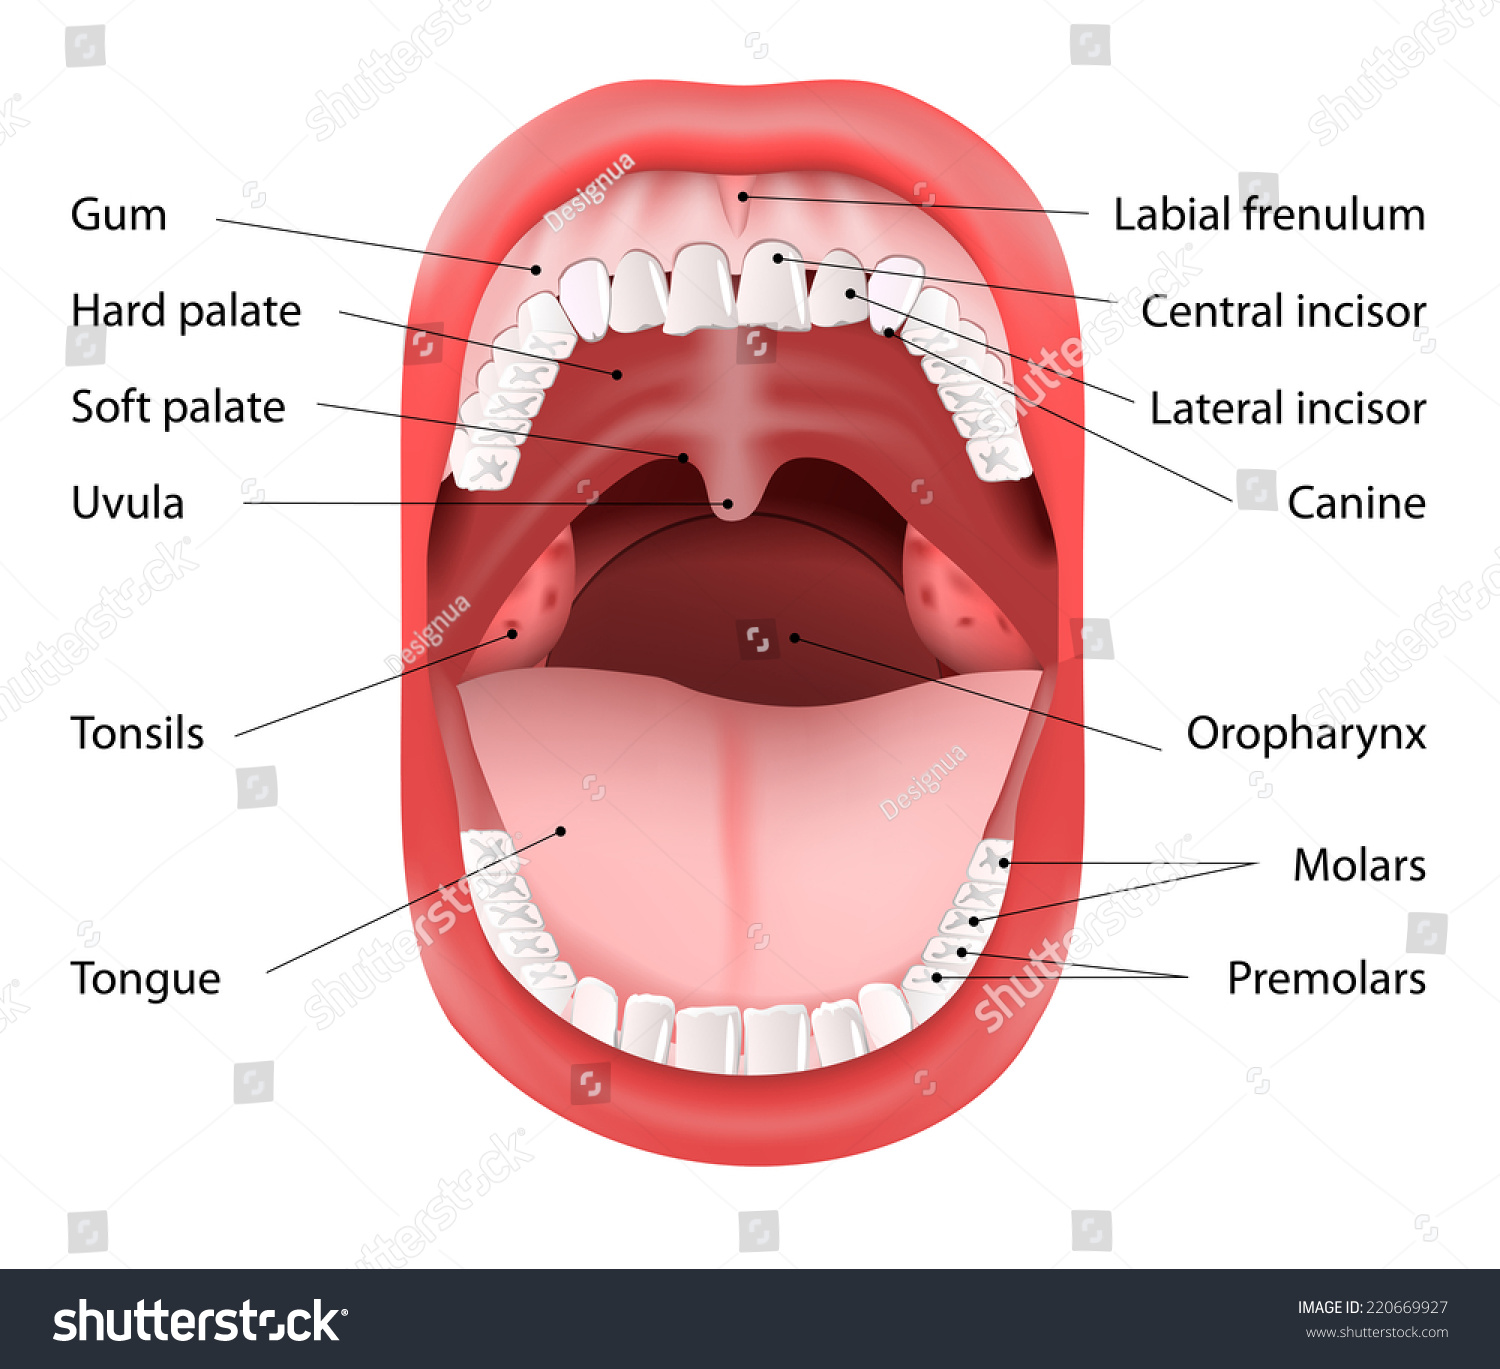 parts human mouth open mouth white stock vector 220669927, Cephalic Vein